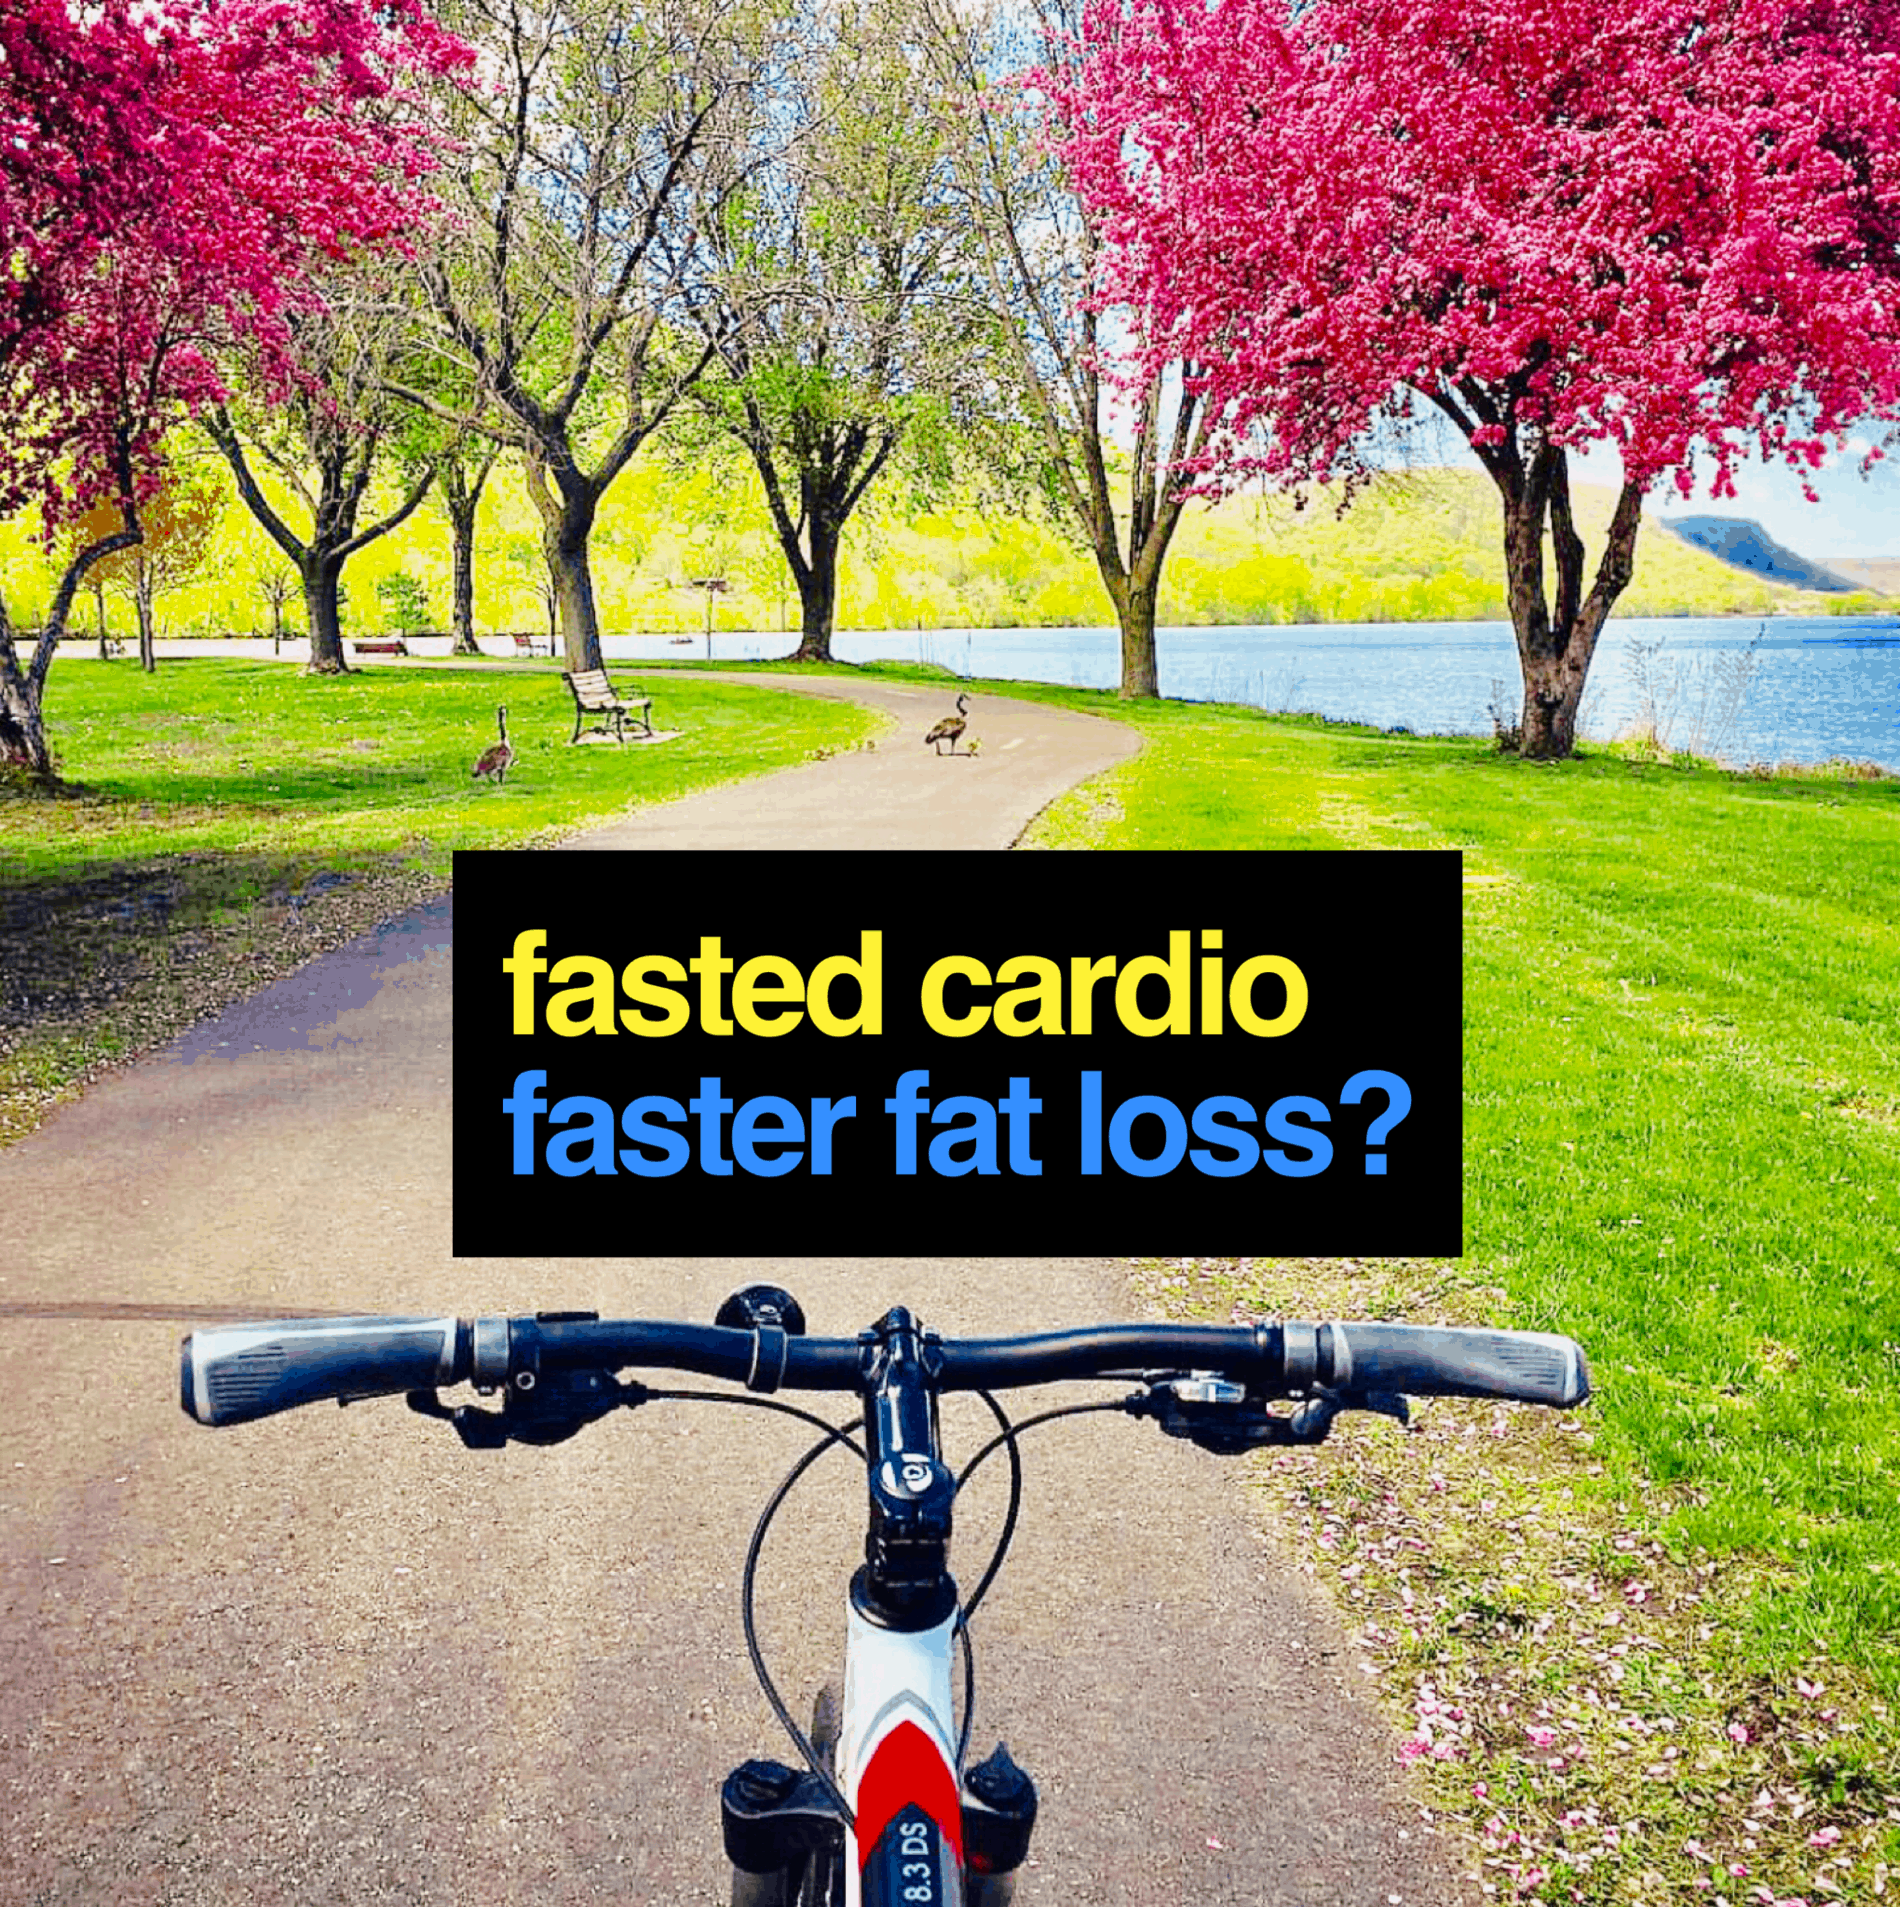 fasted cardio faster fat loss?